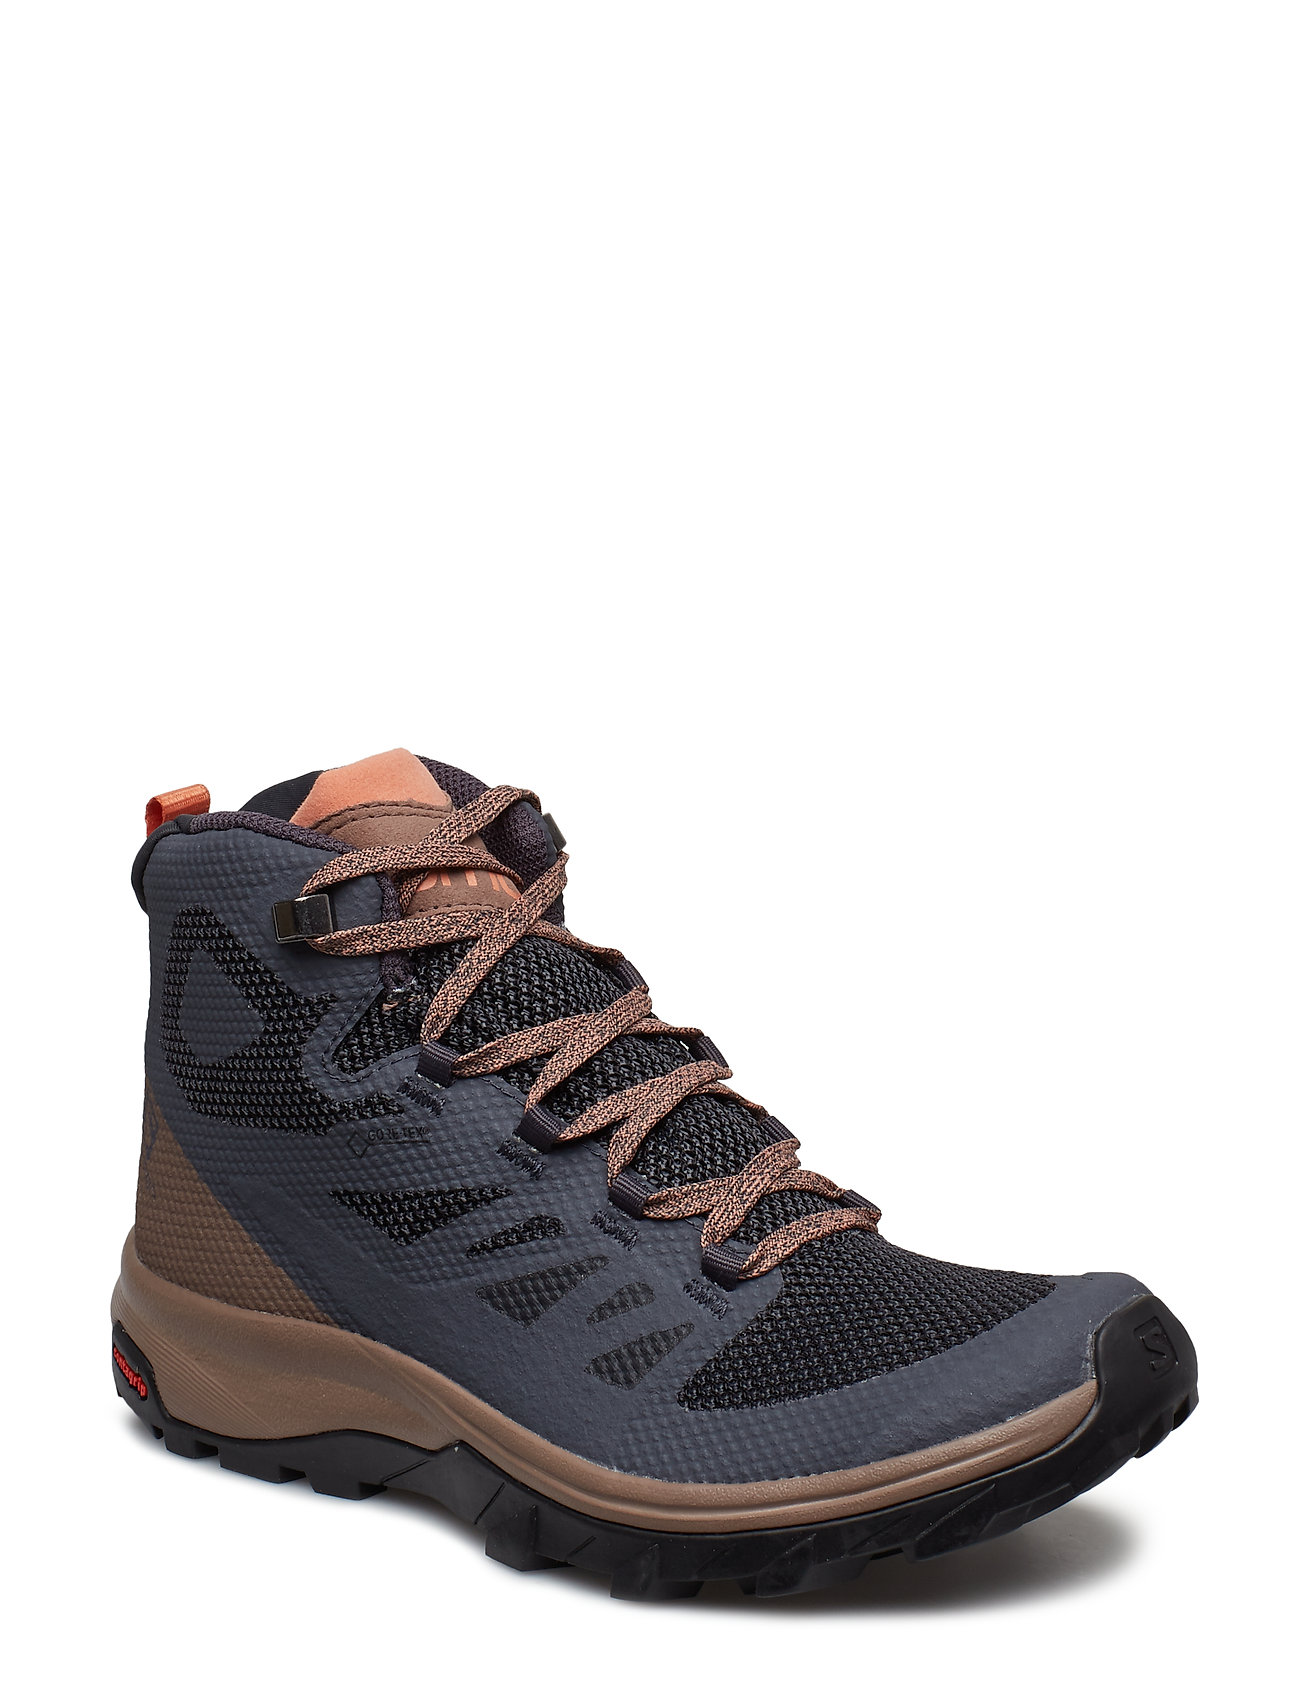 Salomon Outline Mid GTX Hiking Shoes Womens